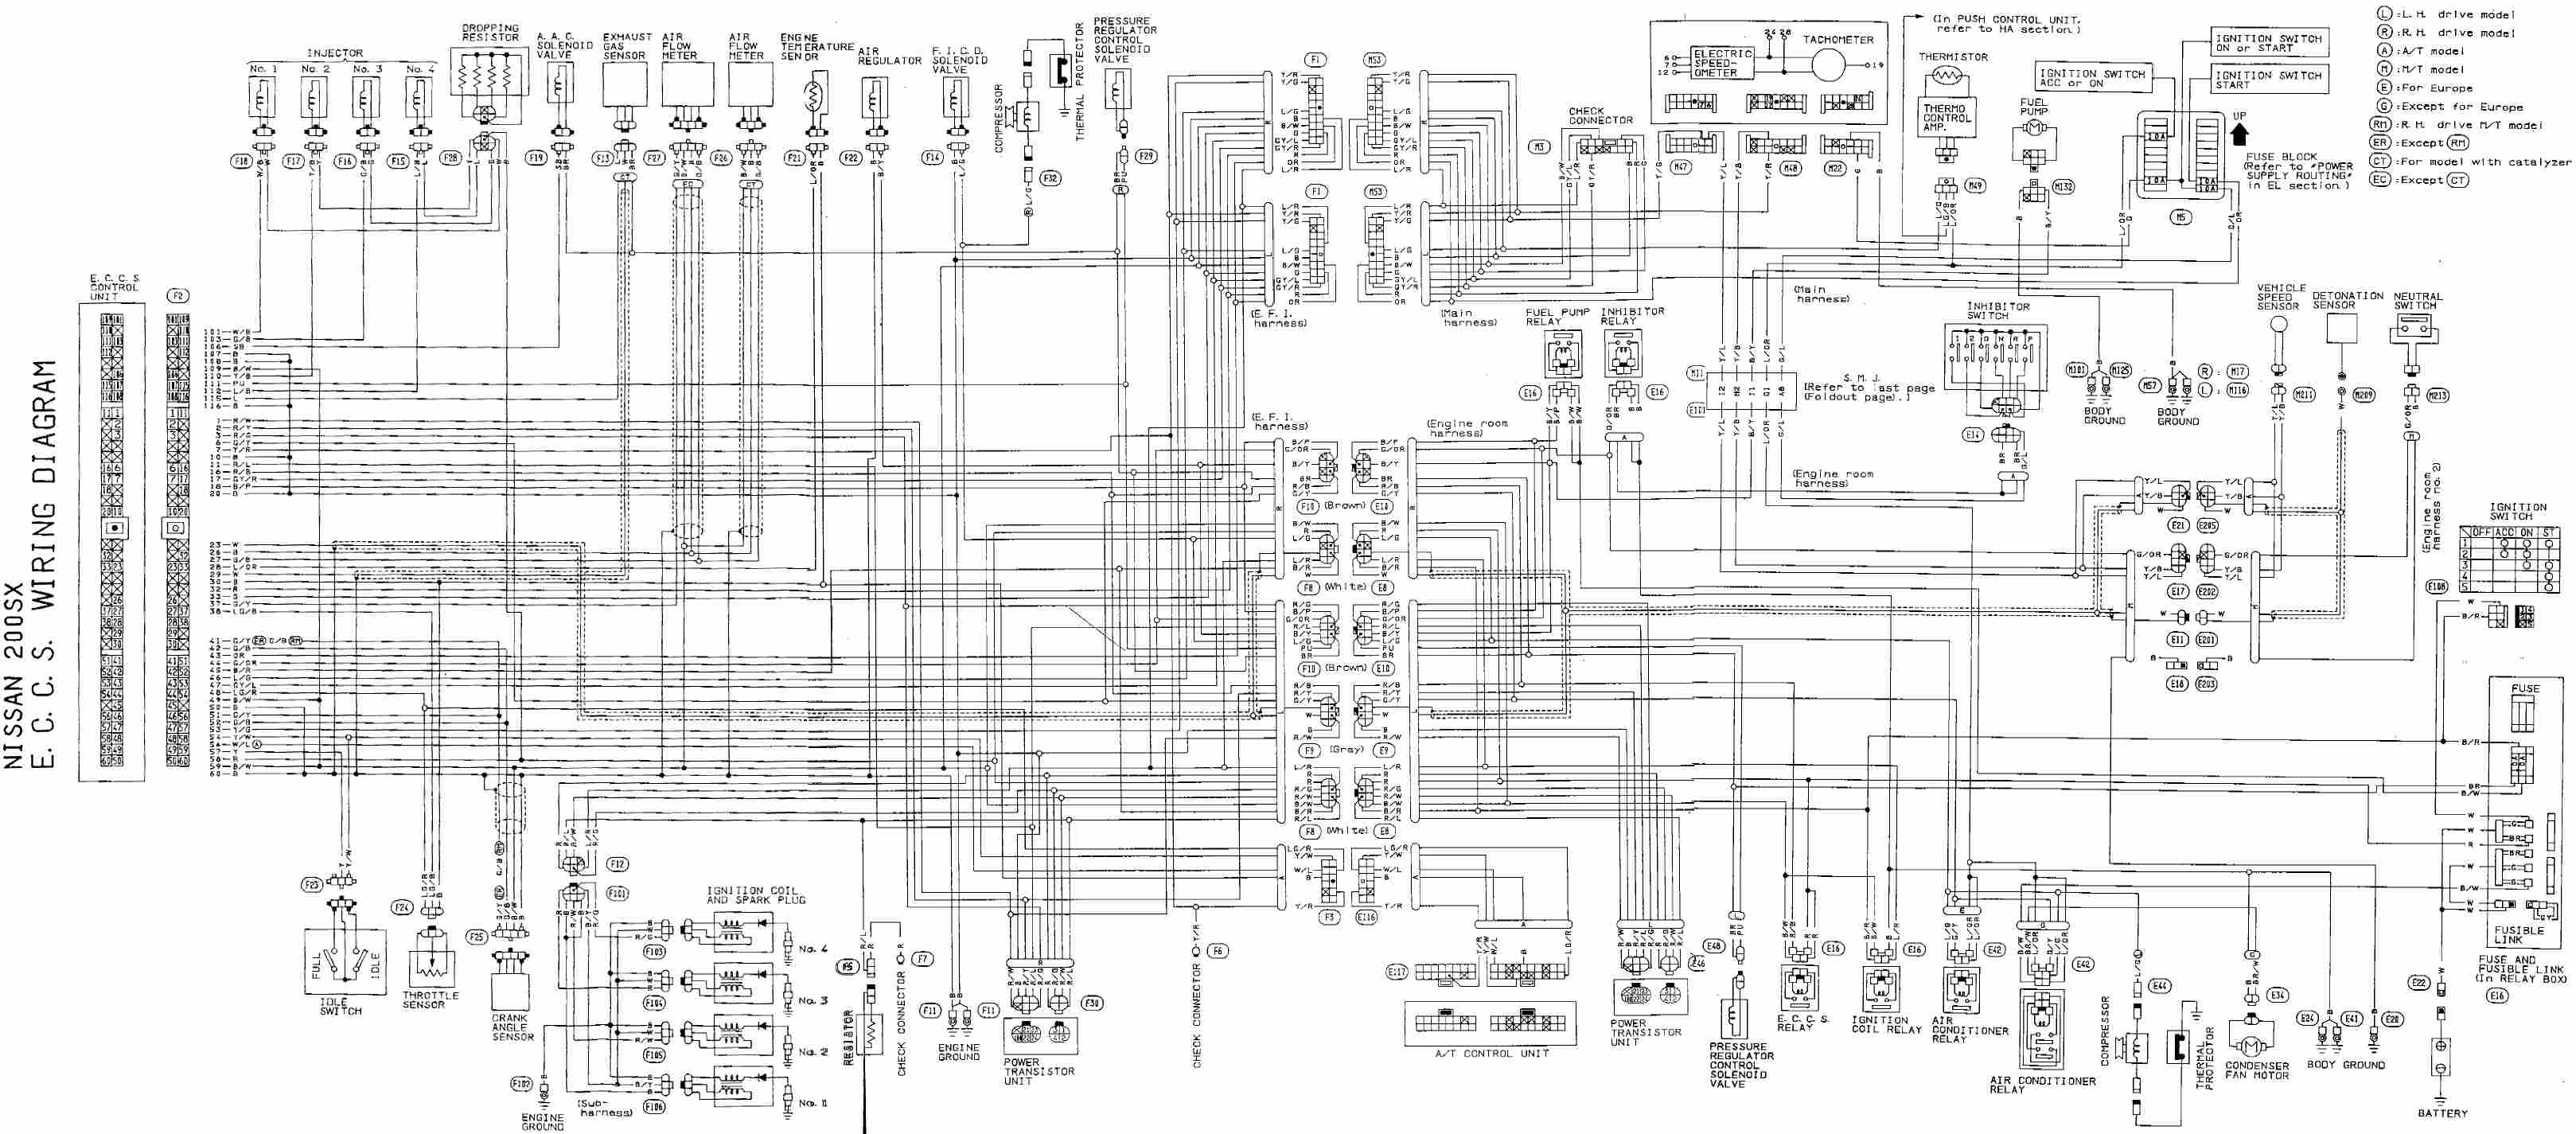 nissan 200sx wiring diagram wiring diagram blogs nissan maxima wiring diagram nissan 200sx wiring diagram [ 3237 x 1425 Pixel ]